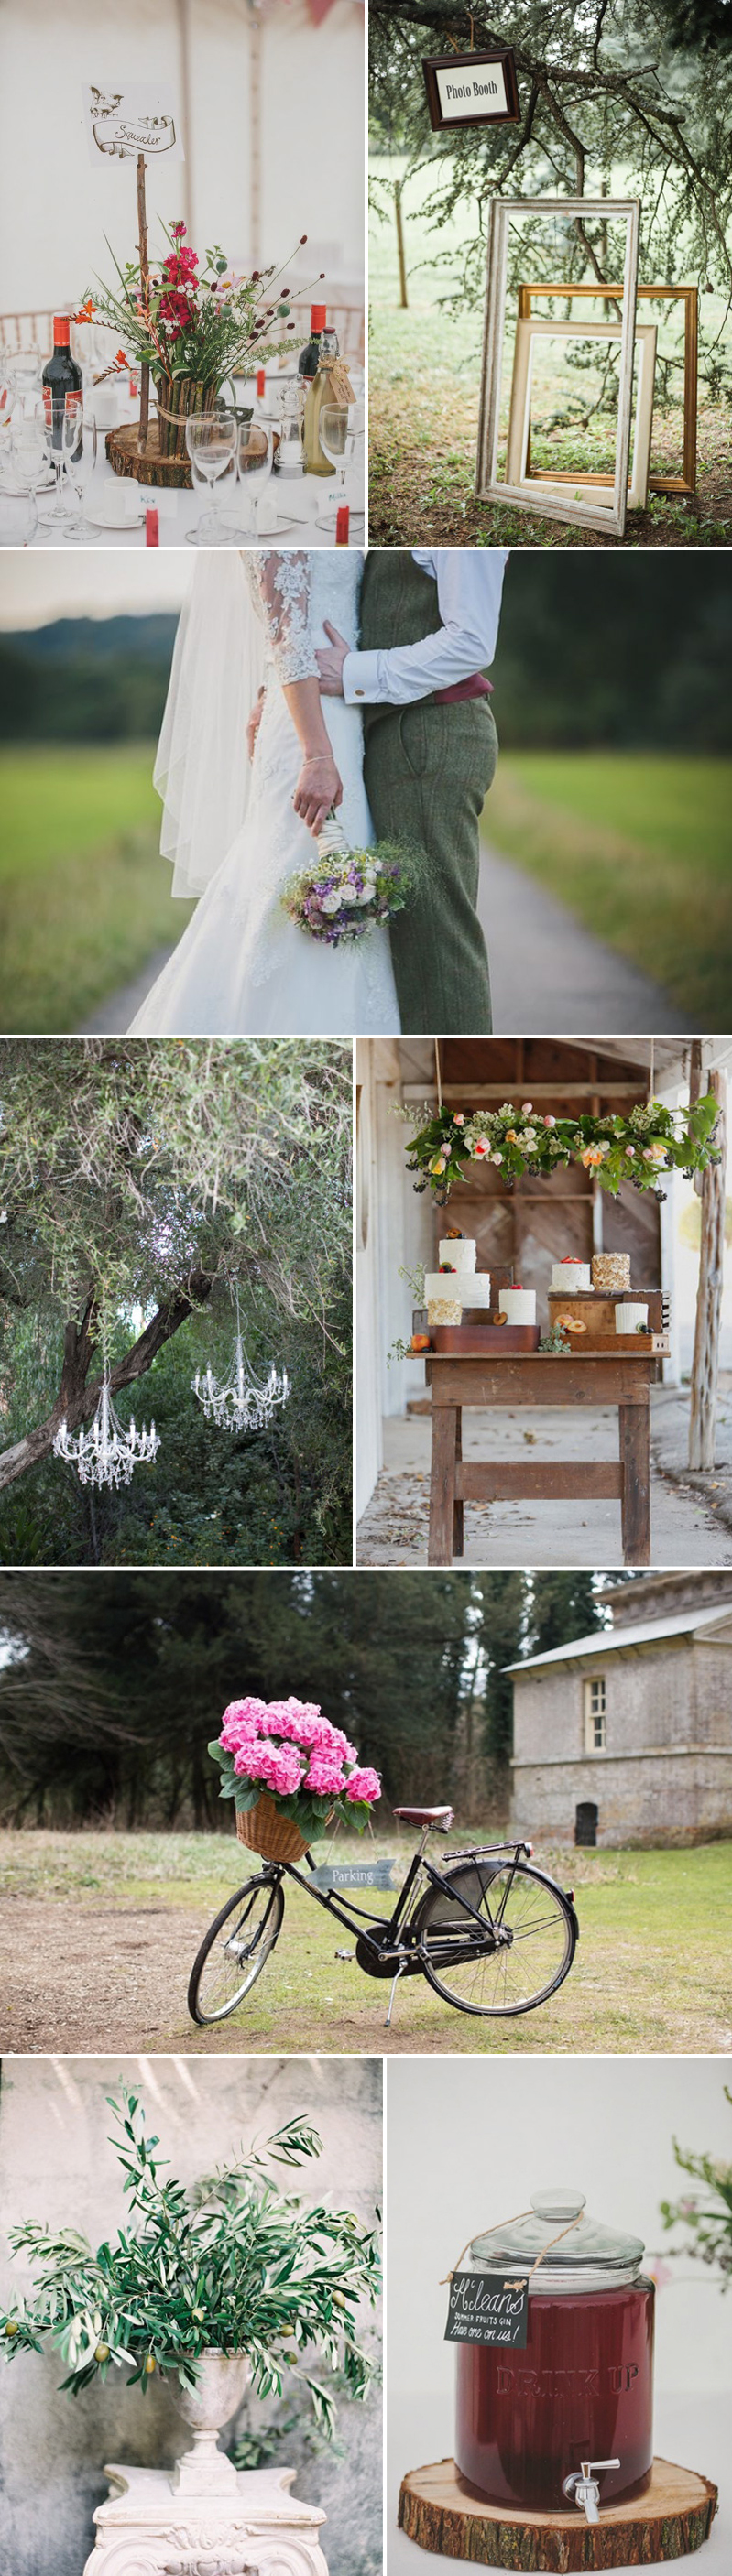 Coco Wedding Venues - Rustic Romance Wedding Style - Homespun Vibe.